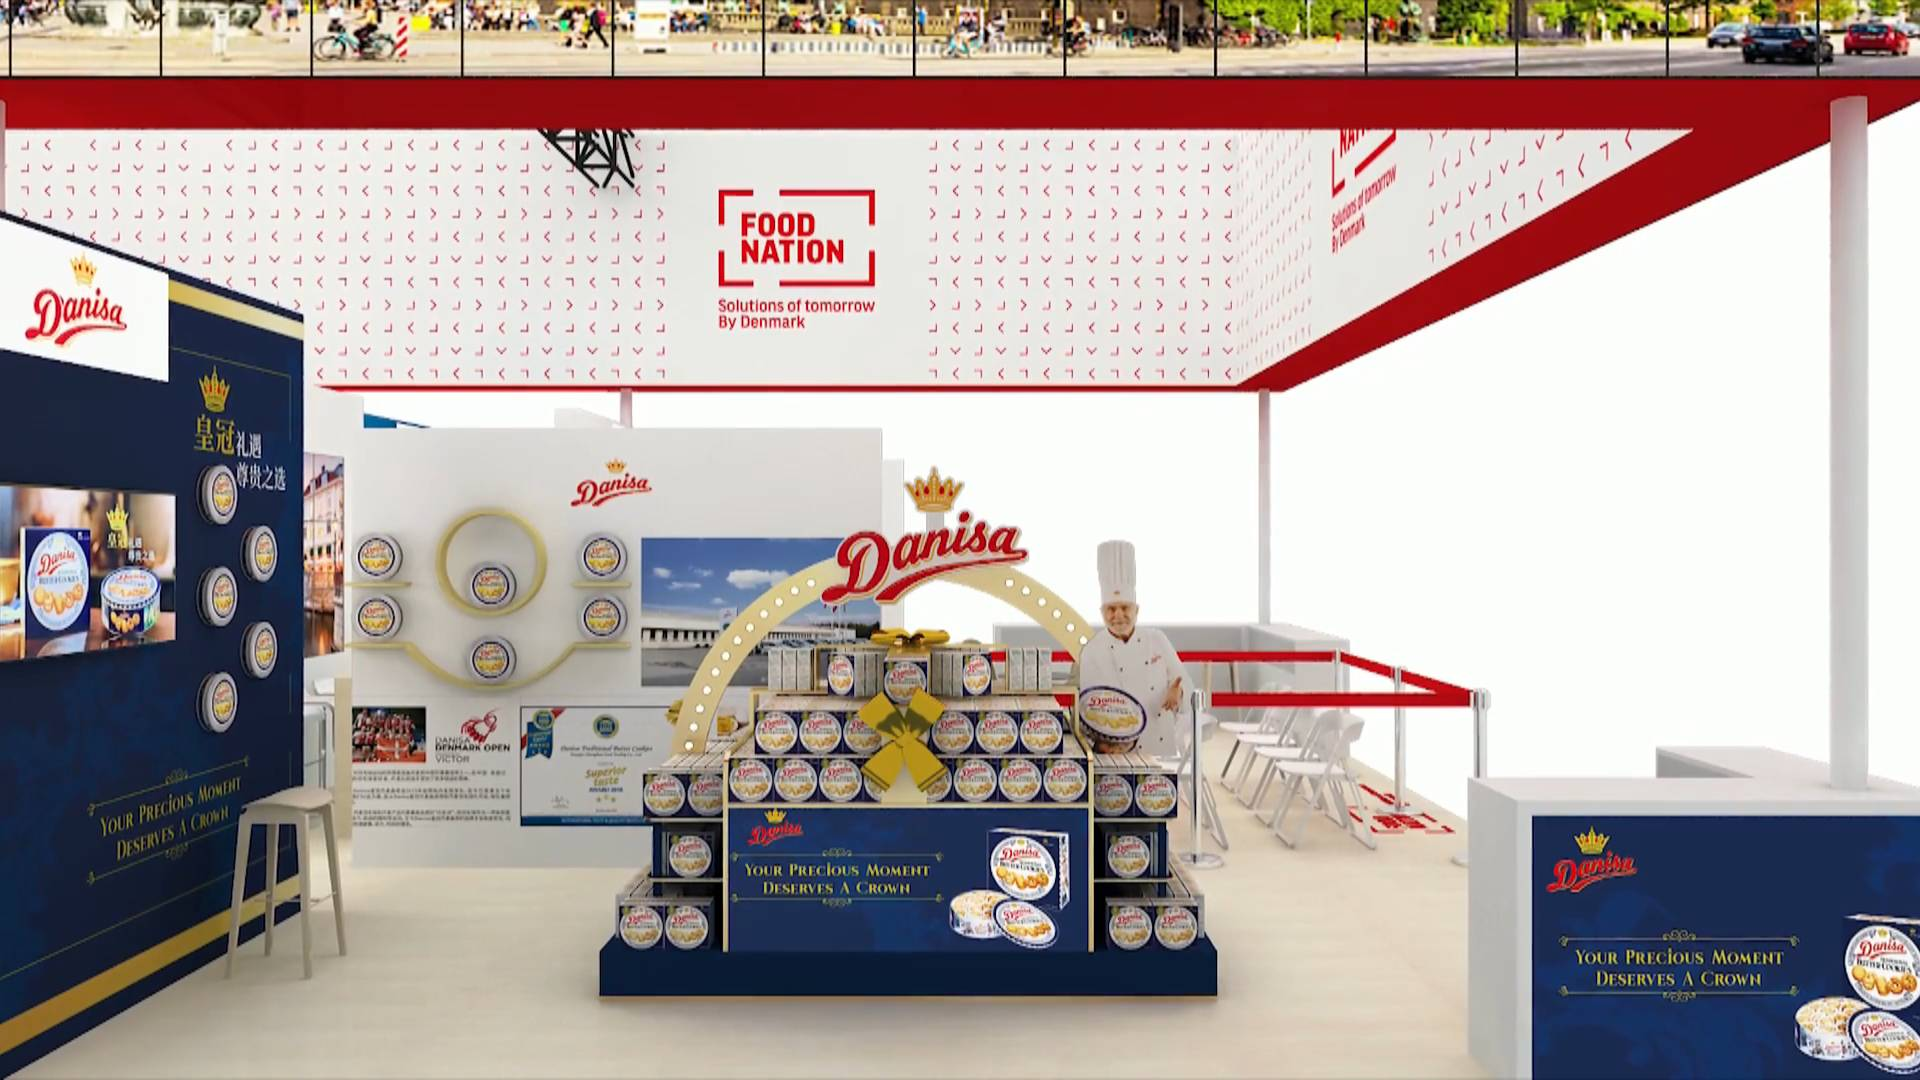 3rd CIIE to see largest representation of Denmark's food companies